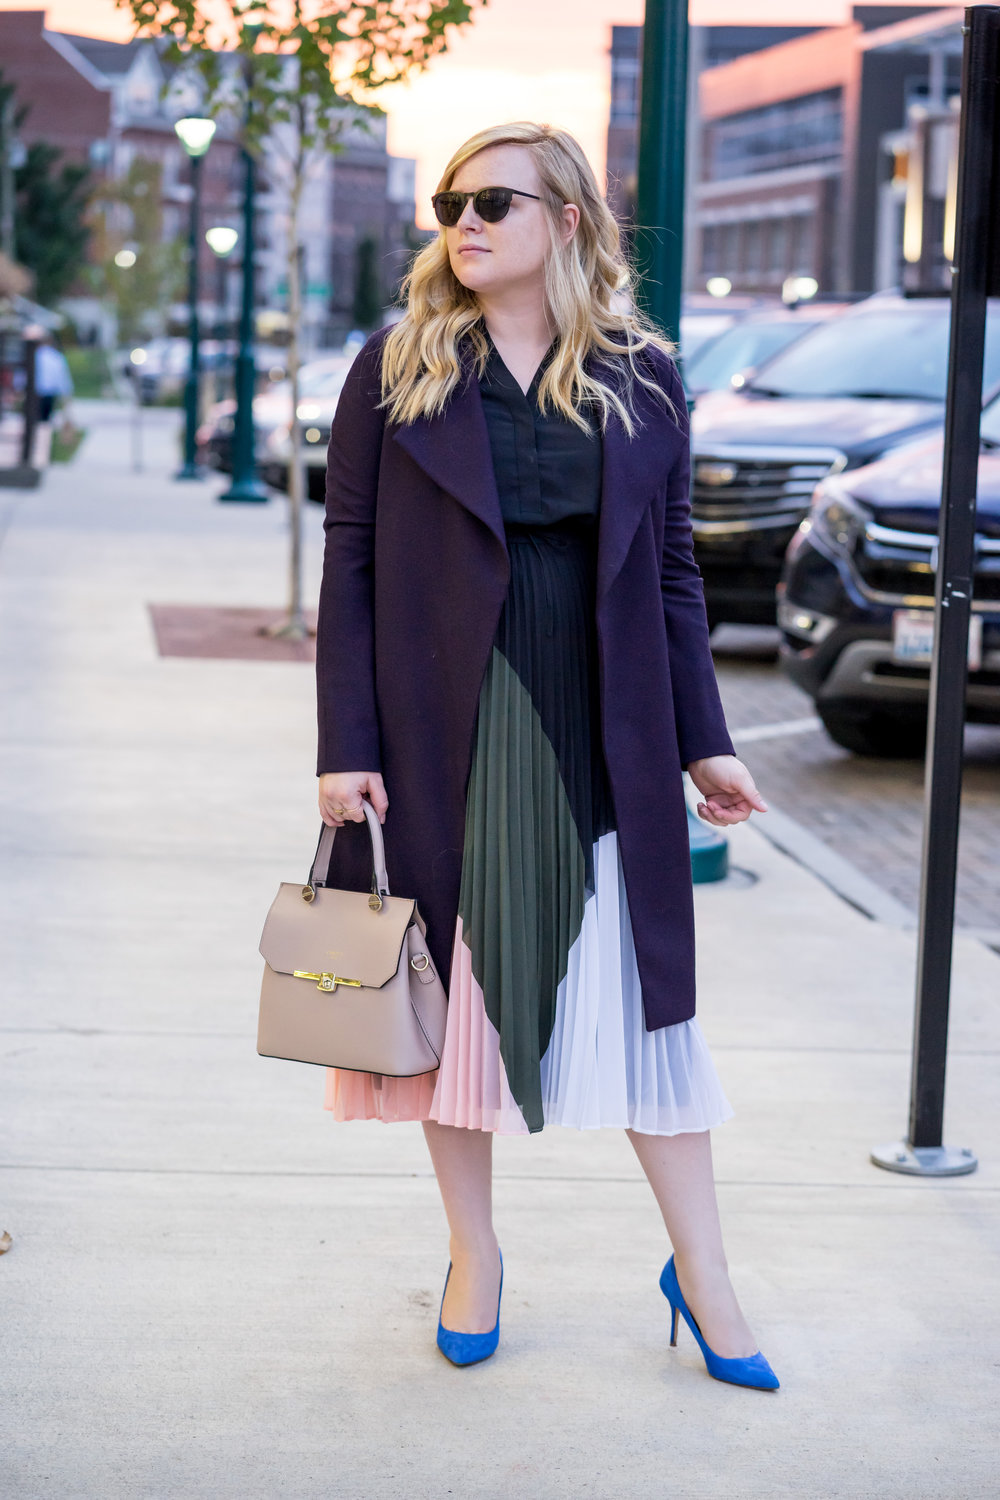 Maggie a la Mode - How to dress like Meghan Markle - 5 Key Elements to Dressing Like a Modern-Day Princess, Club Monaco Shoanah Dress, Elie Tahari Dez Coat, Camelia Roma Leather handbag Cameo, J Crew Elsie Pumps, Warby Parker Aldridge Sunglasses